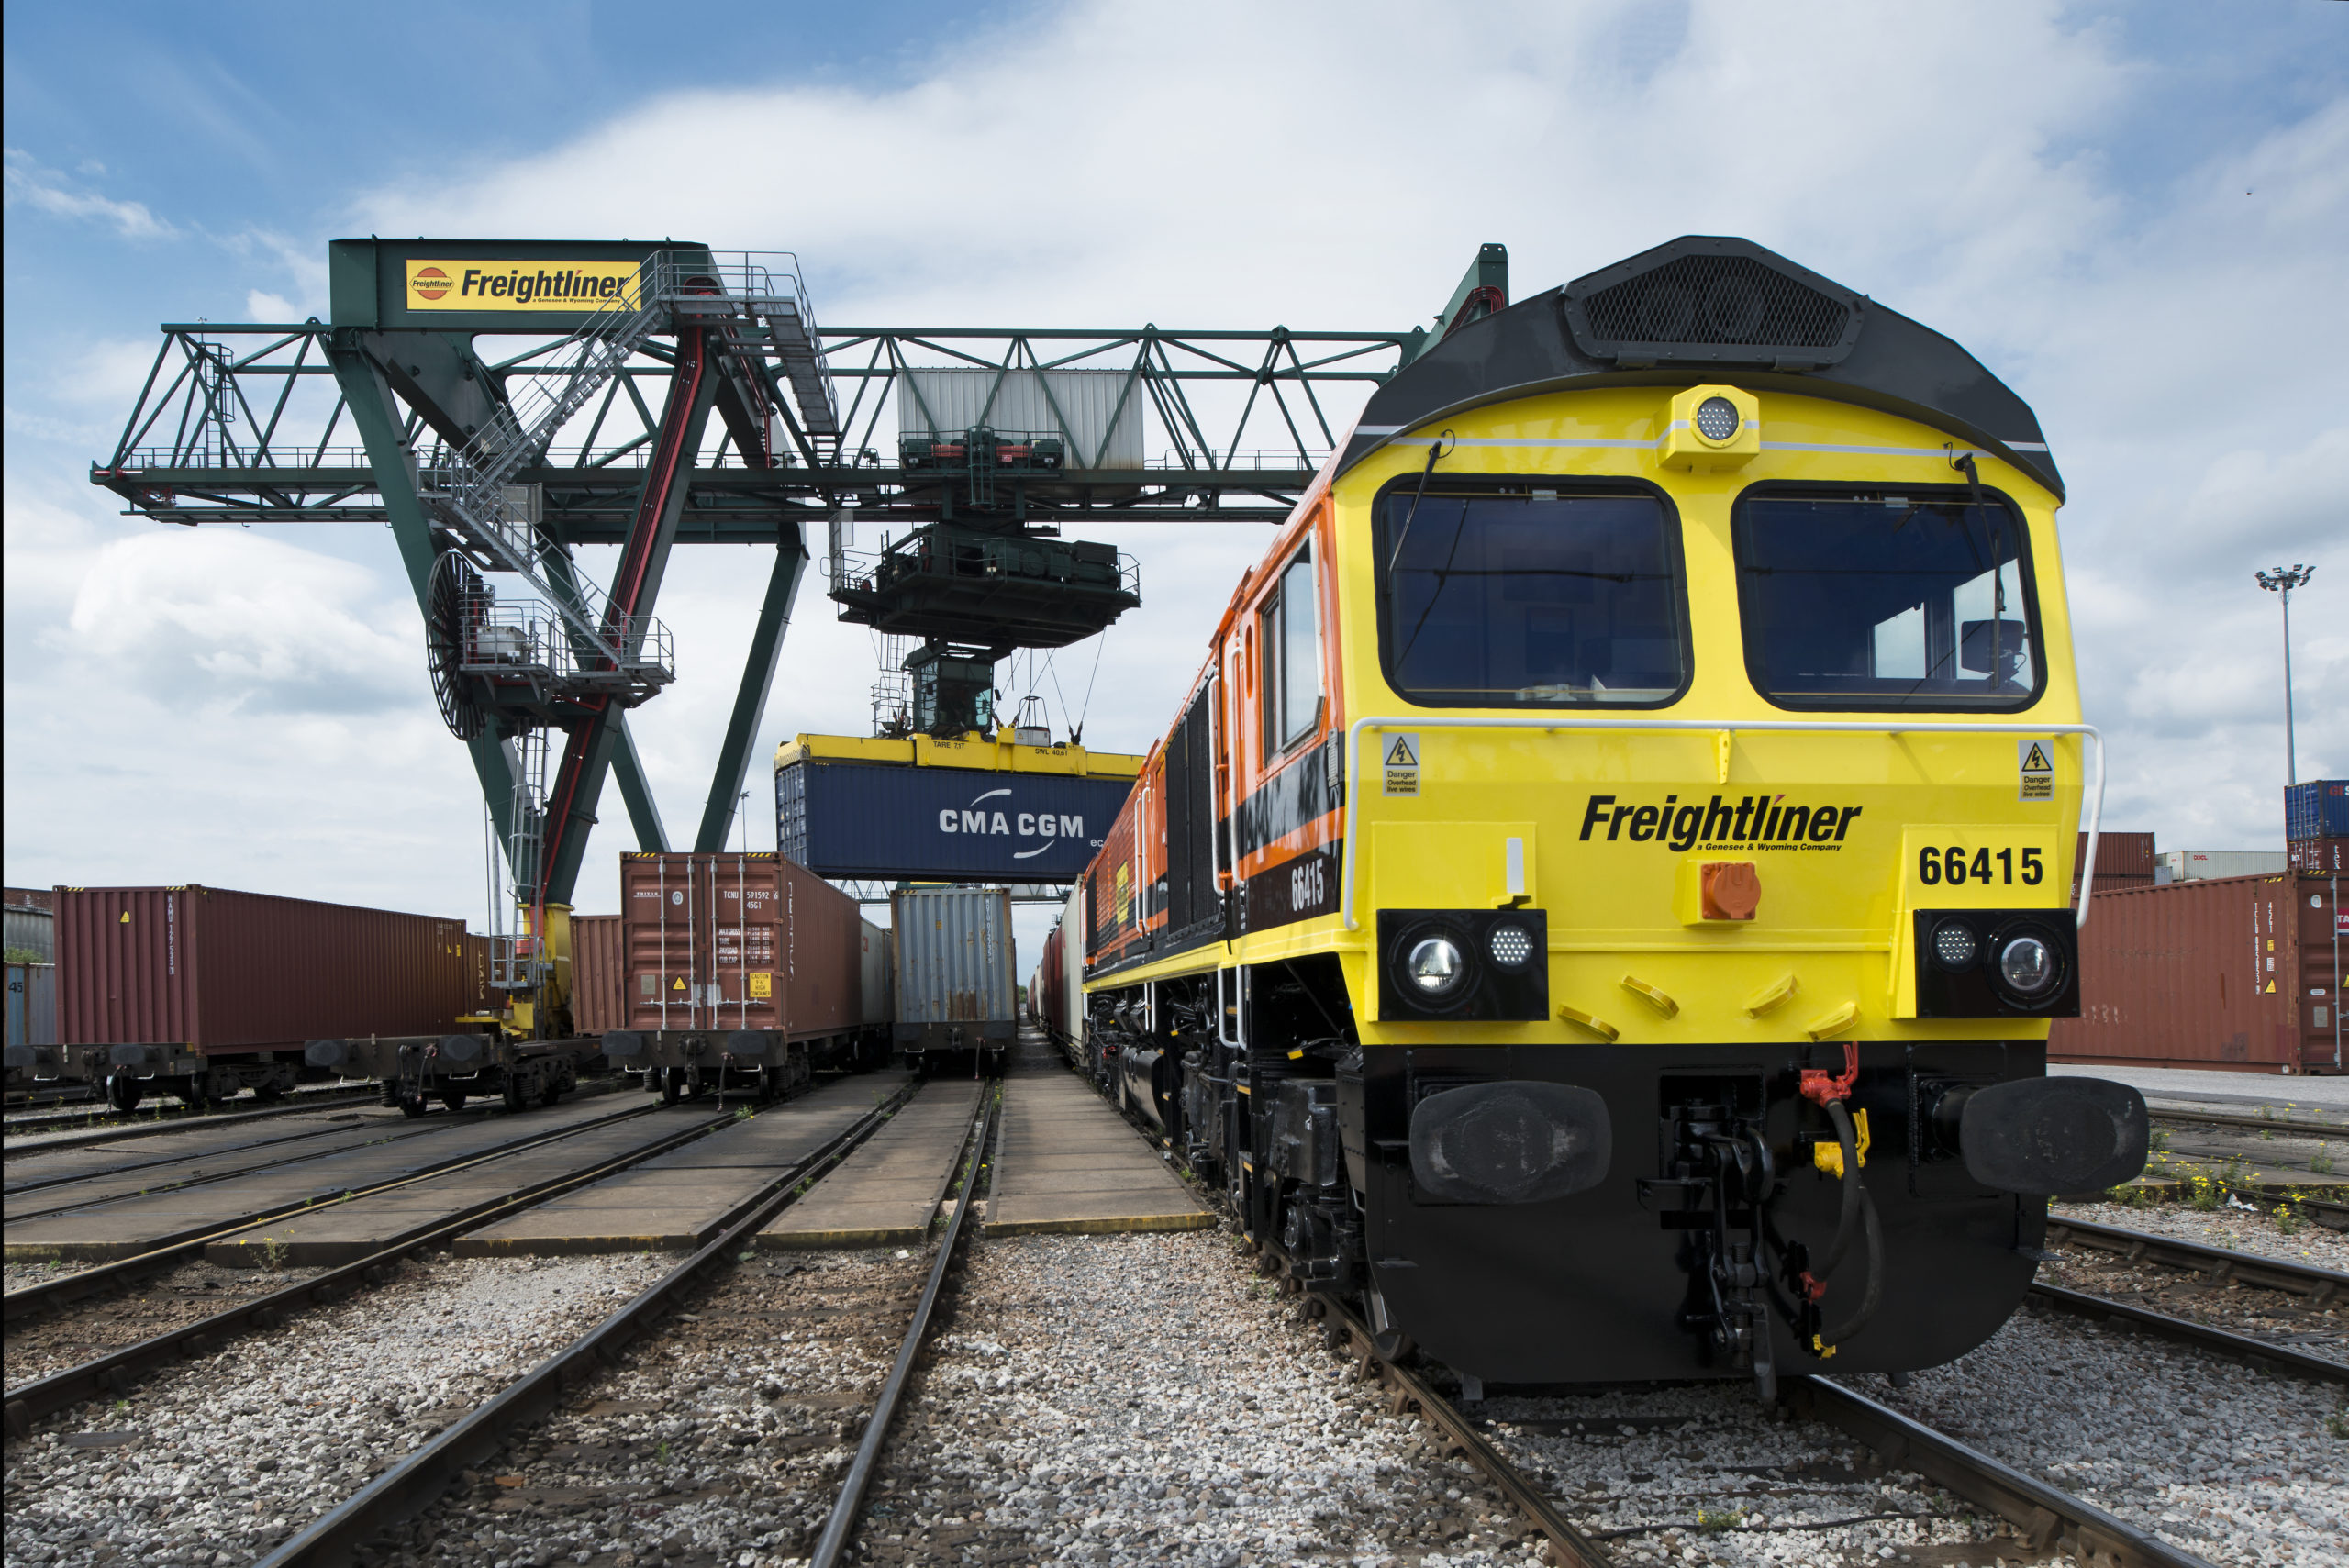 Freightliner UK intermodal yard and train